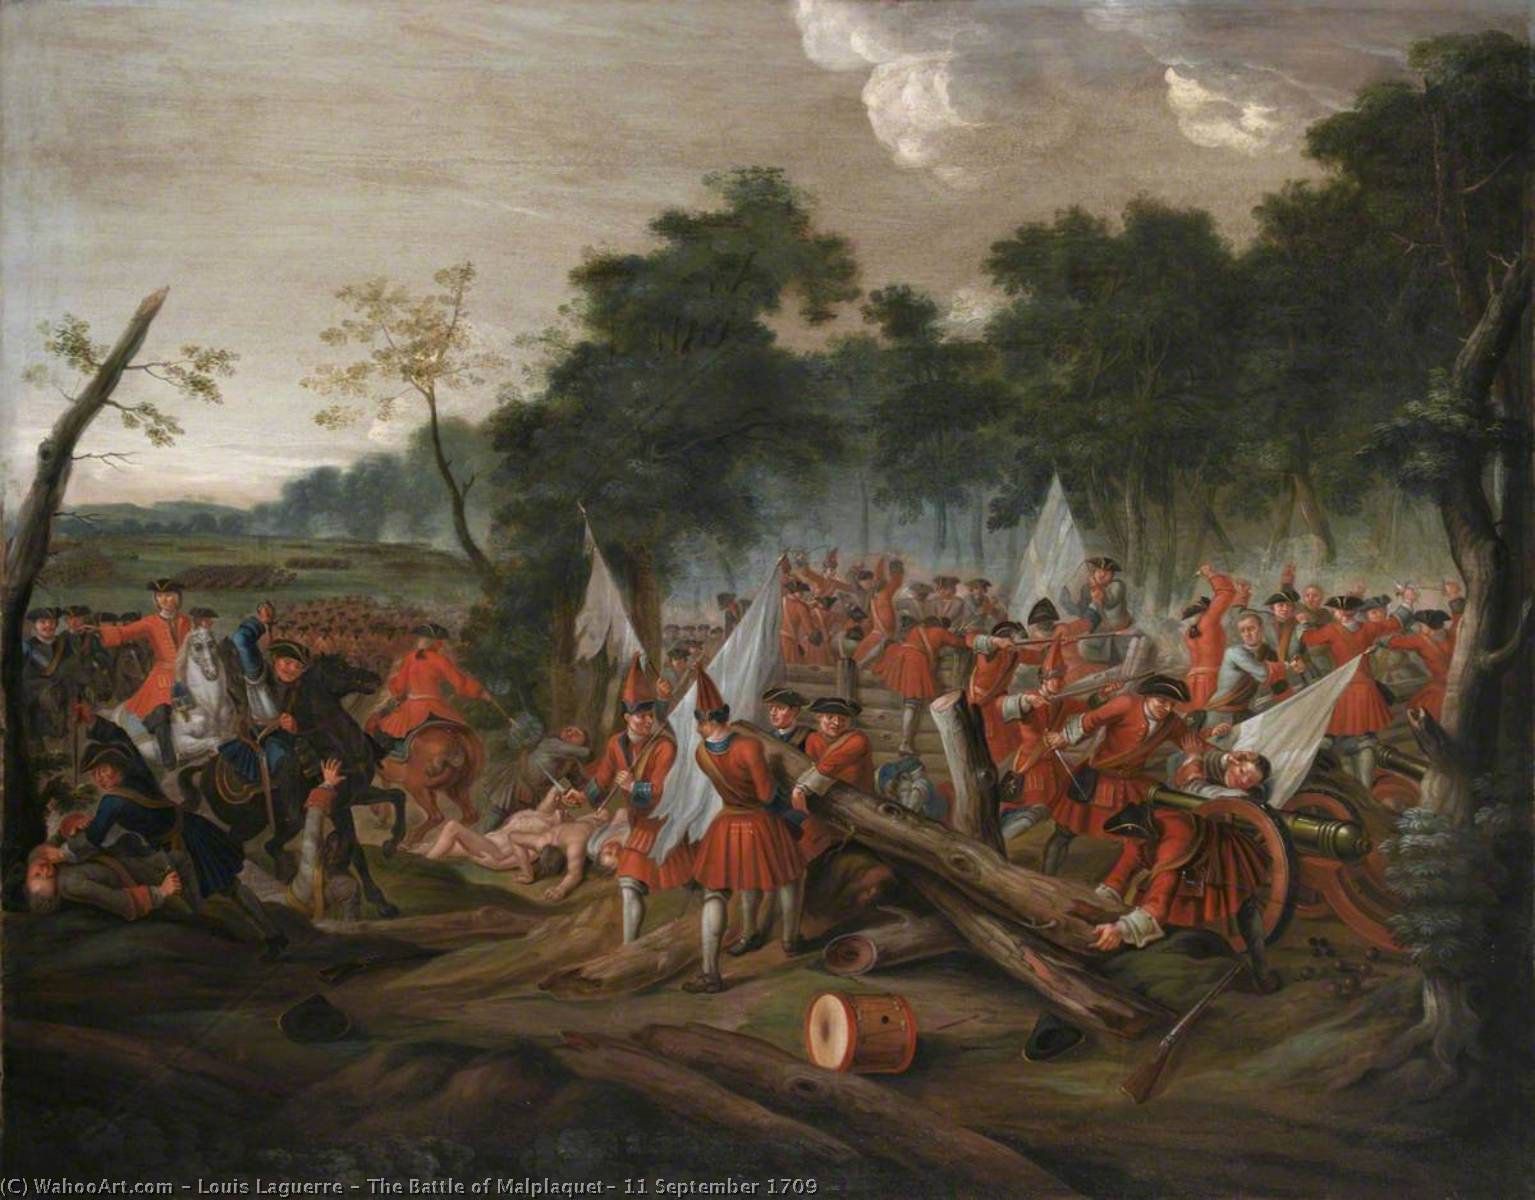 Buy Museum Art Reproductions | The Battle of Malplaquet, 11 September 1709, 1713 by Louis Laguerre (1663-1721) | WahooArt.com